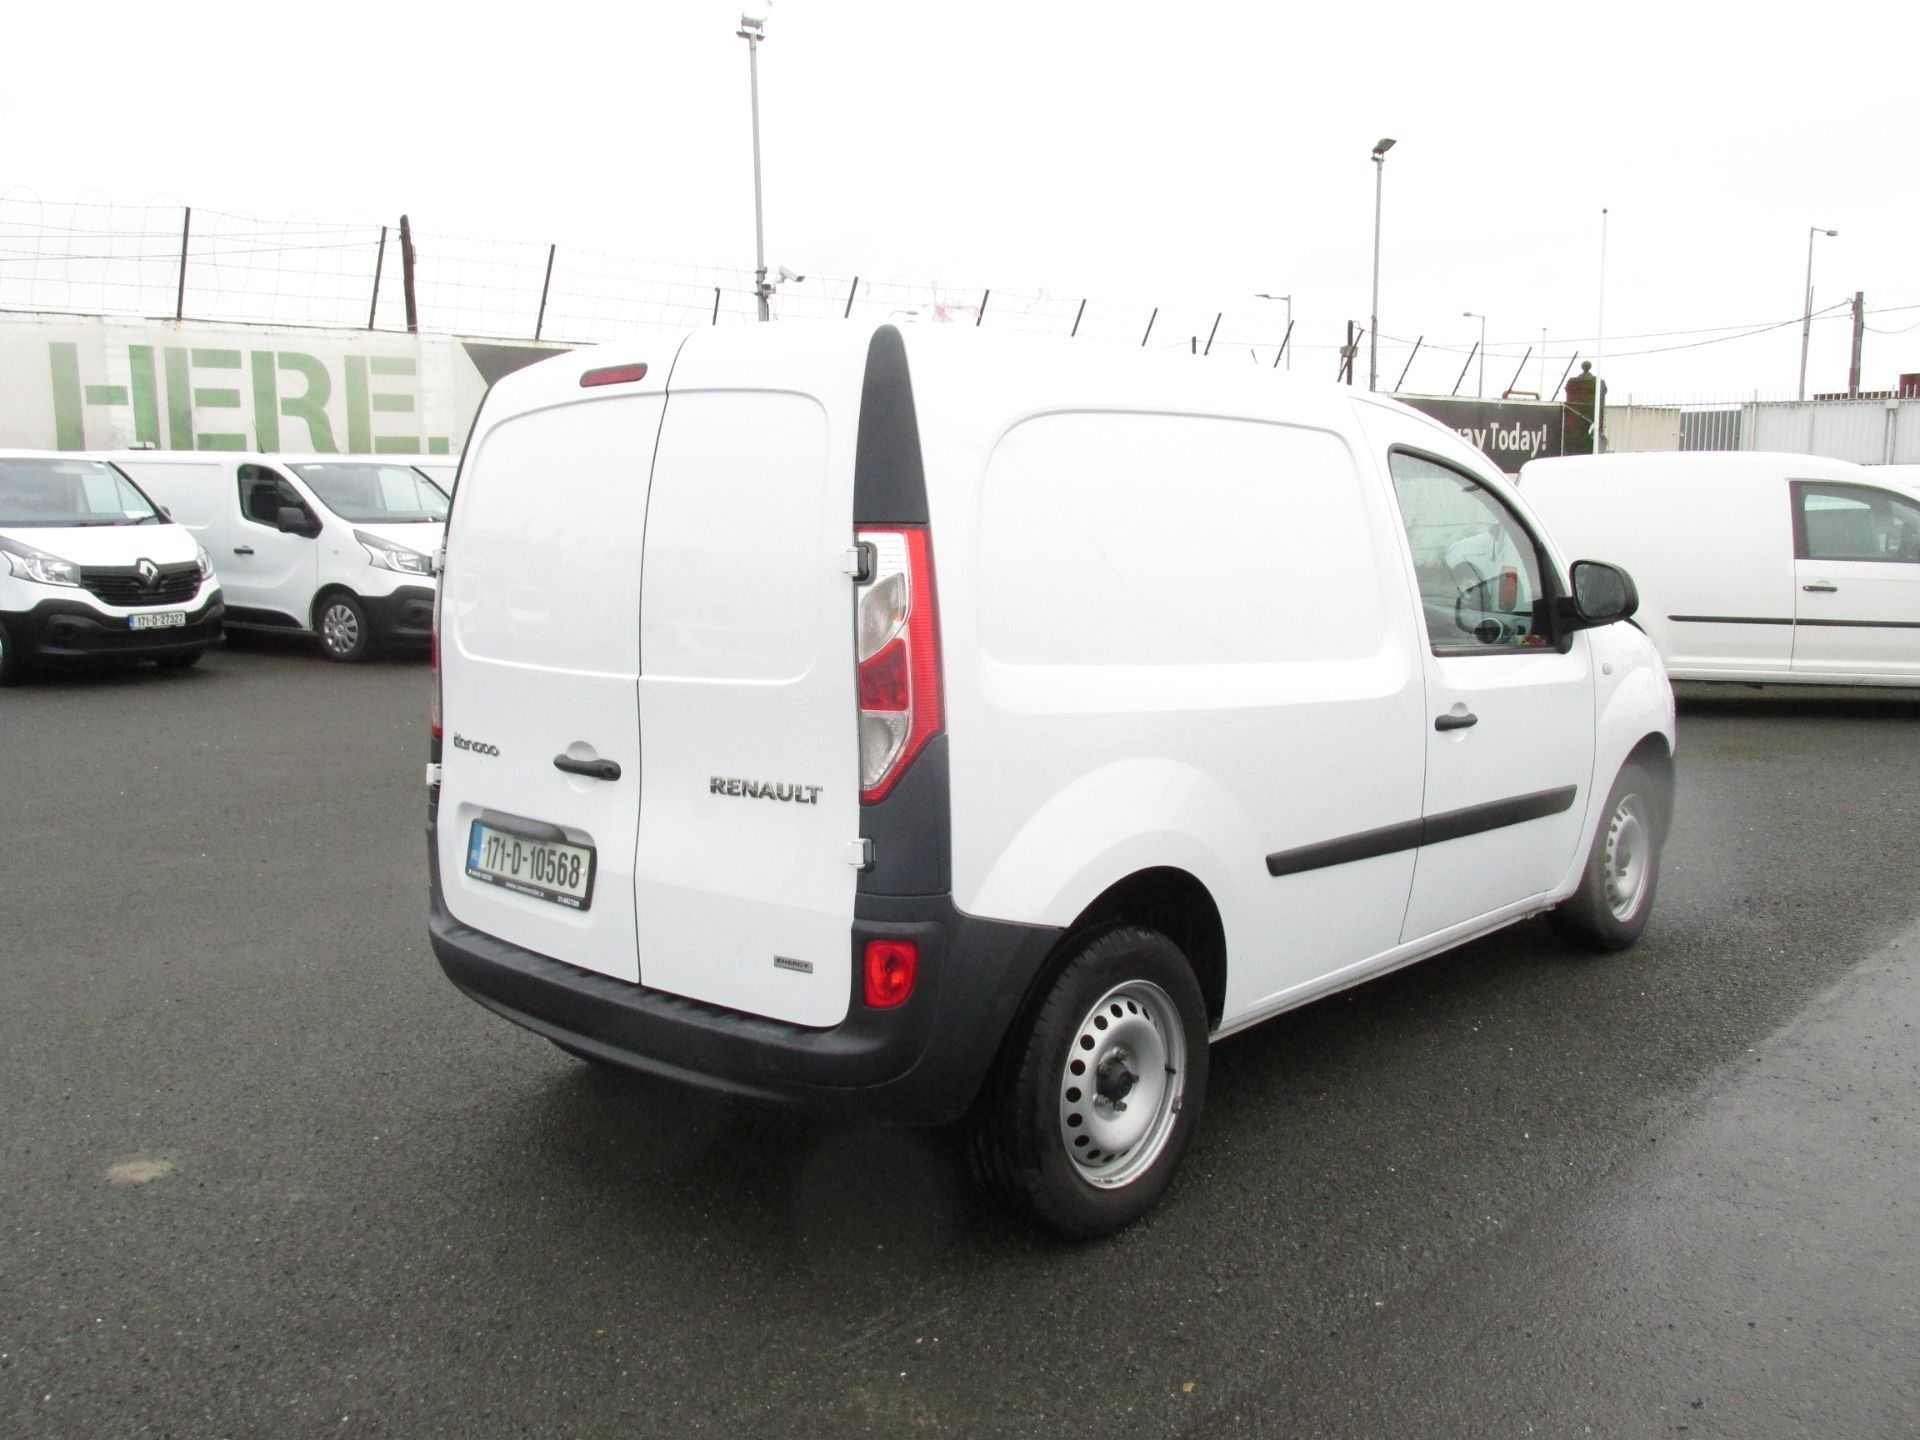 2017 Renault Kangoo ML19 Energy DCI 75 Business 2D click and collect call sales for more info (171D10568) Image 7